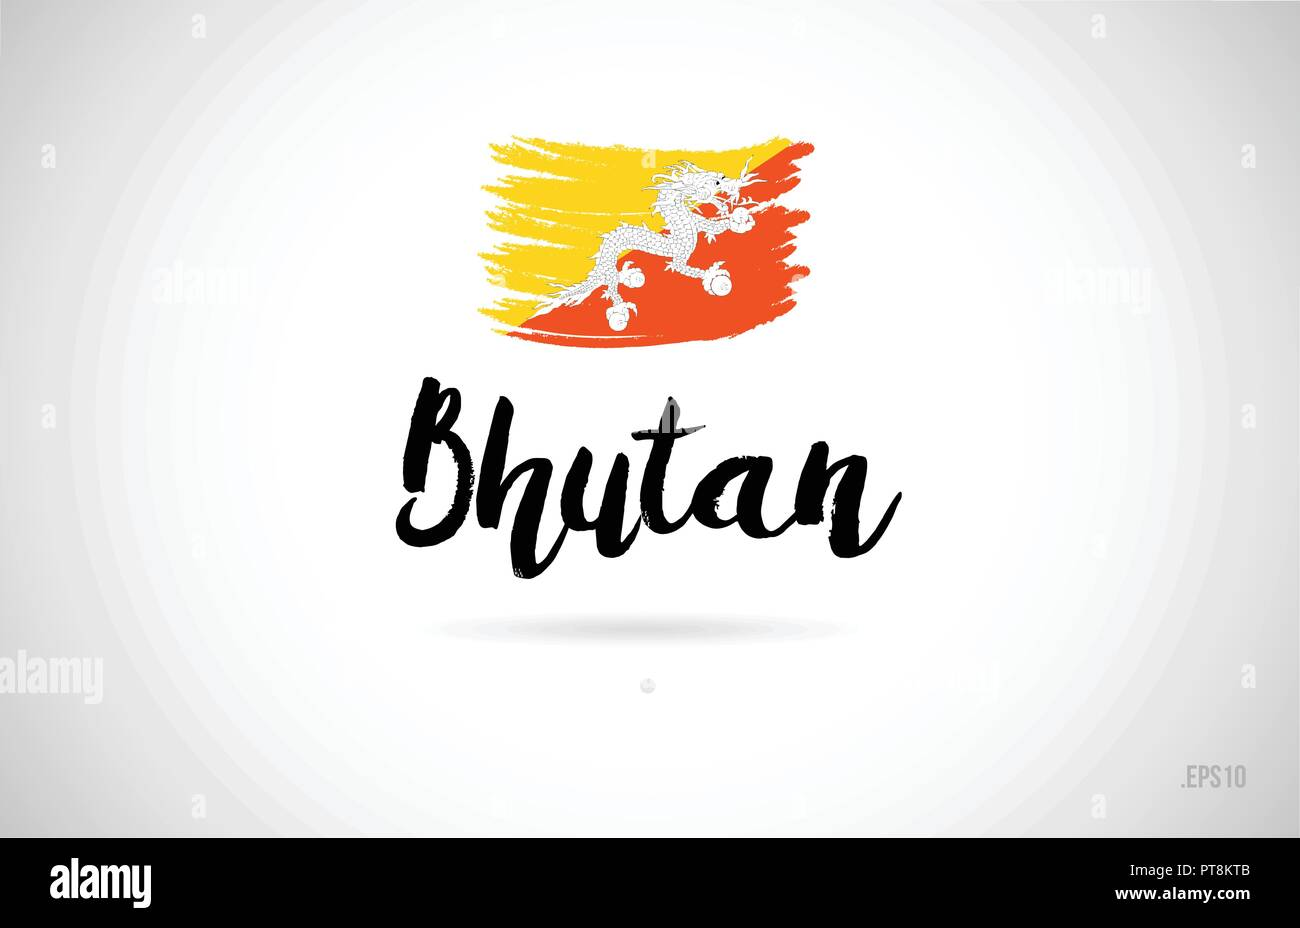 bhutan country flag concept with grunge design suitable for a logo icon design - Stock Vector